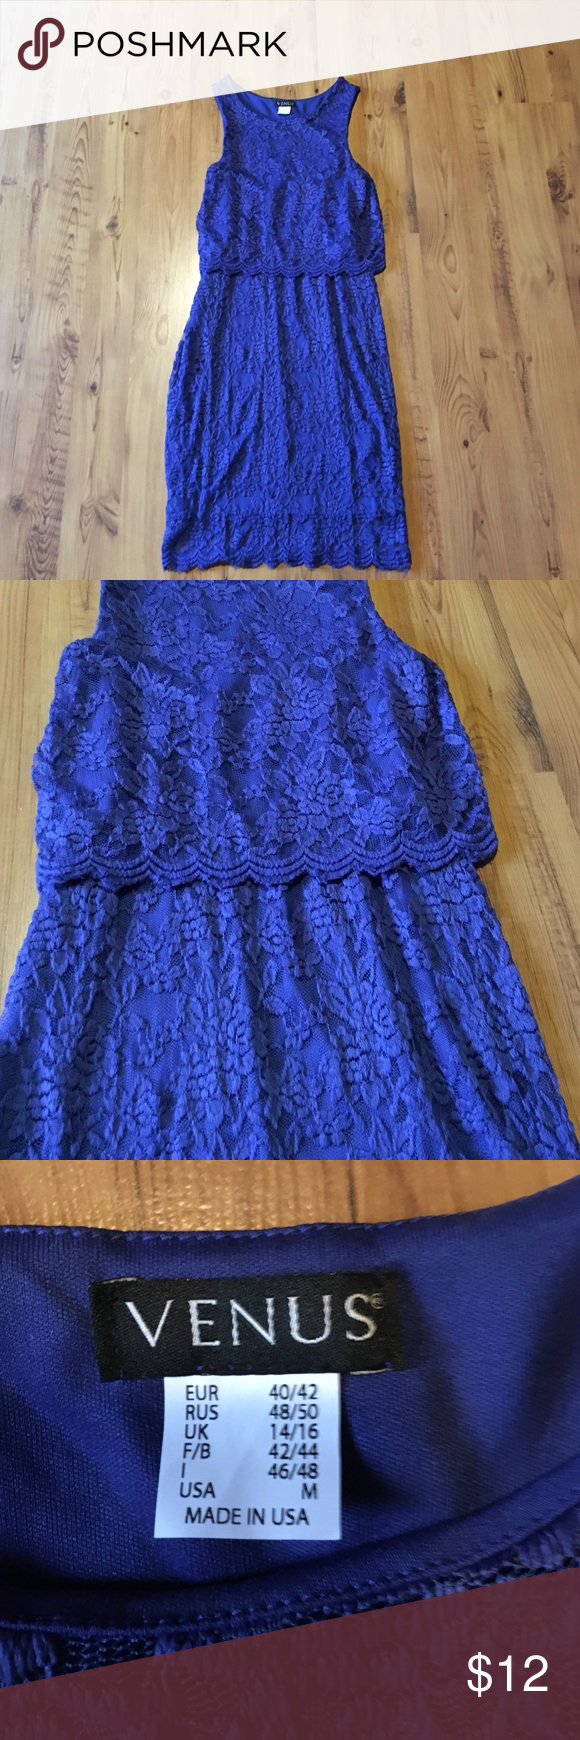 Beautiful blue dress! Never been worn blue dress with floral detail! This dress was purchased for a wedding but was too tight for me. It's a medium but fits more like a small. It has a beautiful overlay and the top layer goes about an inch or so past the underlining. Very pretty! Venus  Dresses Wedding